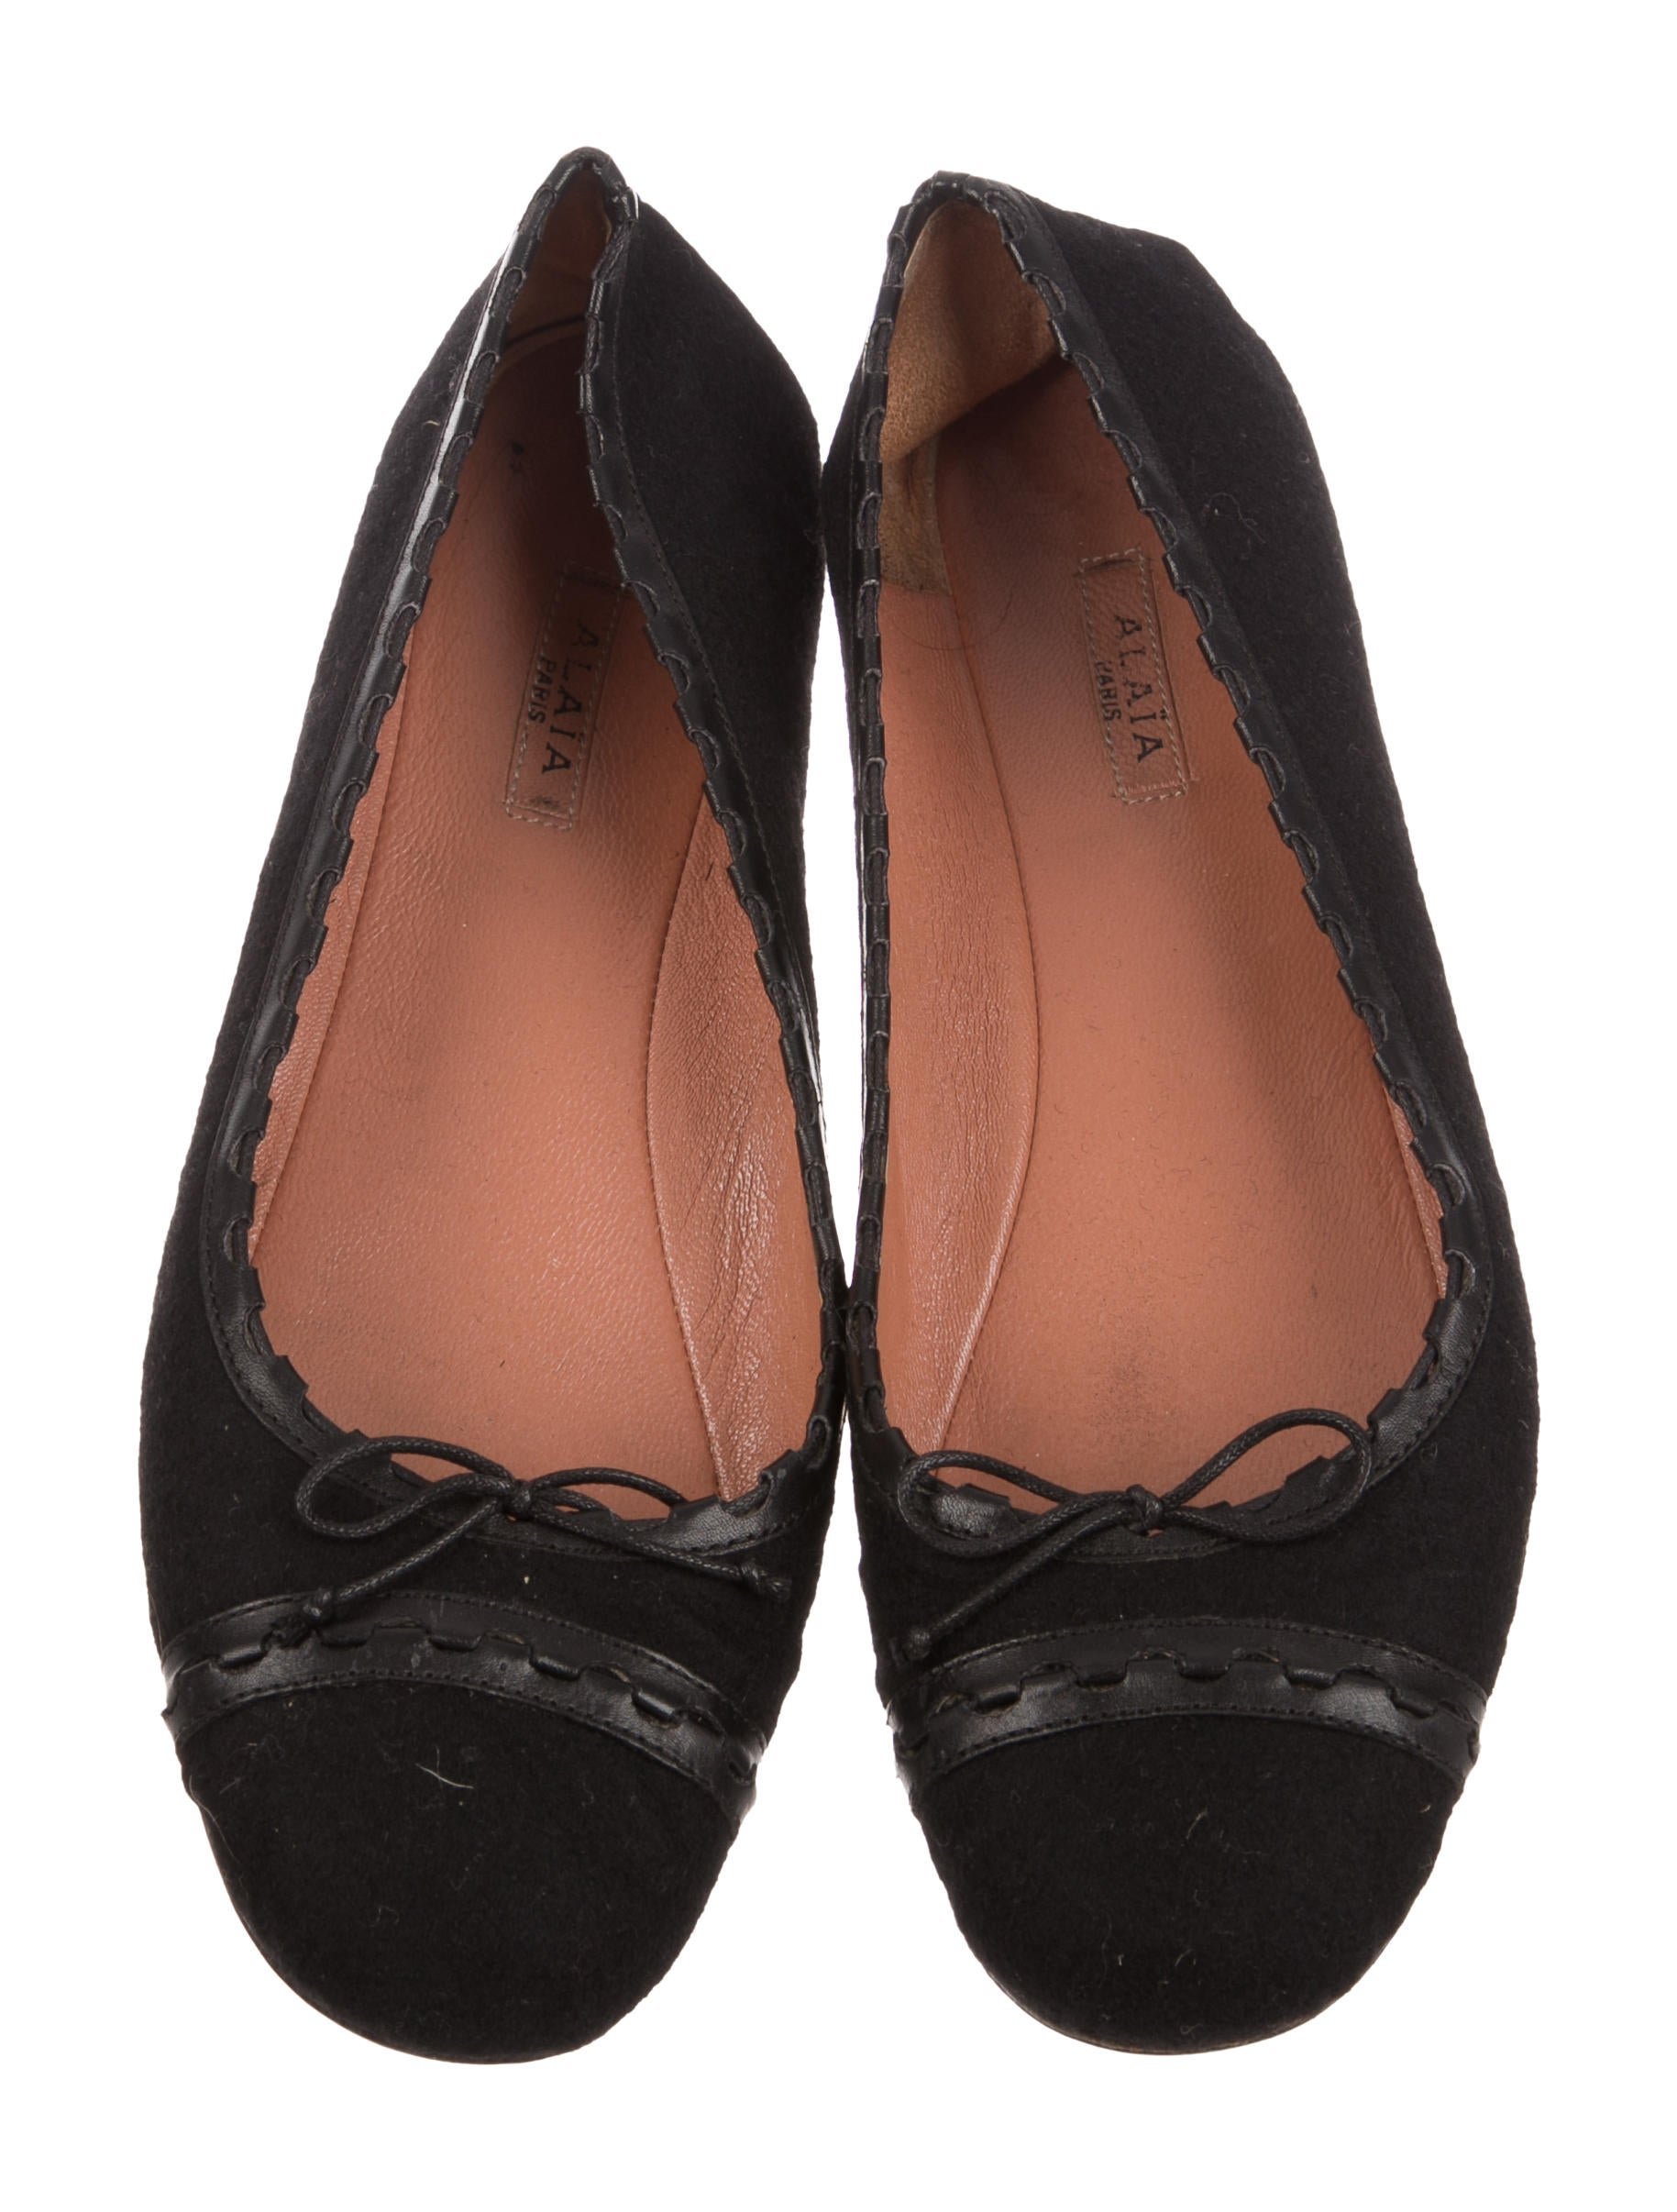 outlet very cheap supply online Alaïa Leather-Trimmed Round-Toe Flats low cost cheap price free shipping brand new unisex choice for sale 0ORh4RzZcu